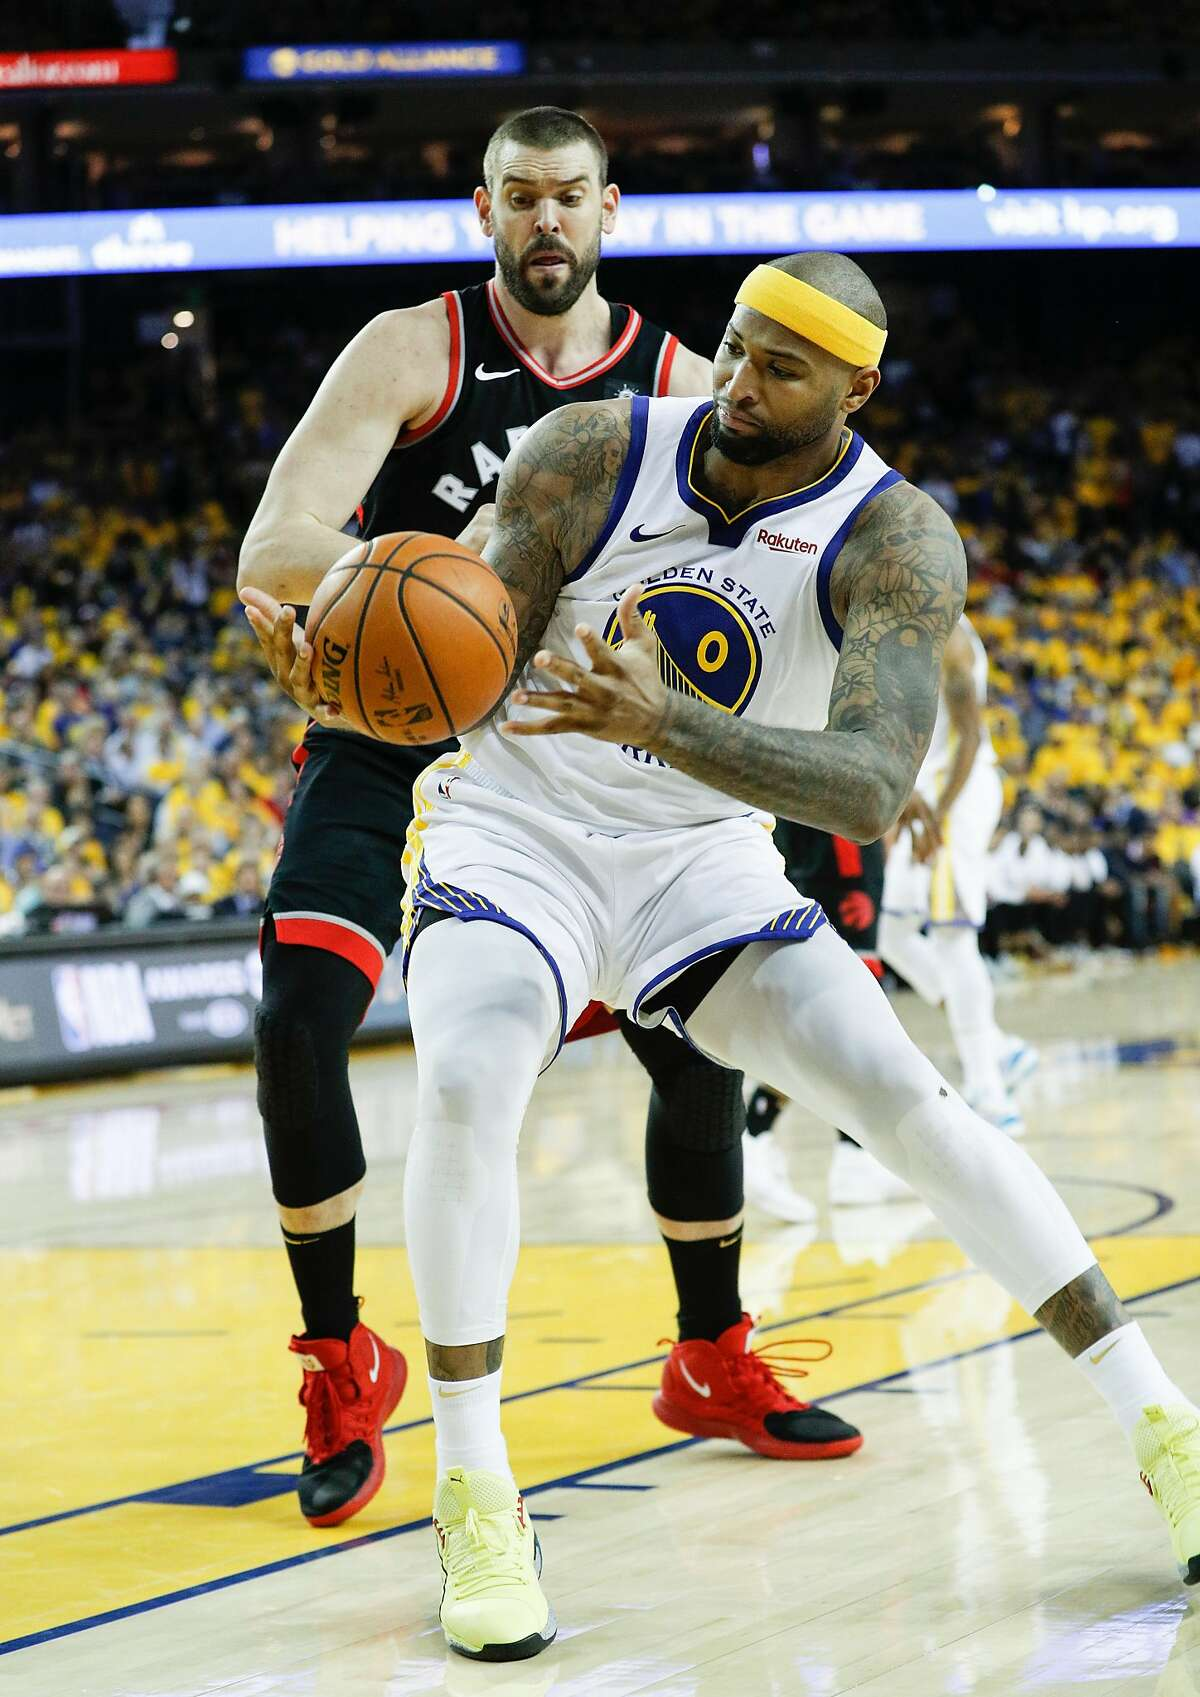 Golden State Warriors' DeMarcus Cousins grabs the ball in front of Toronto Raptors'Marc Gasol in the third quarter during game 3 of the NBA Finals between the Golden State Warriors and the Toronto Raptors at Oracle Arena on Wednesday, June 5, 2019 in Oakland, Calif.